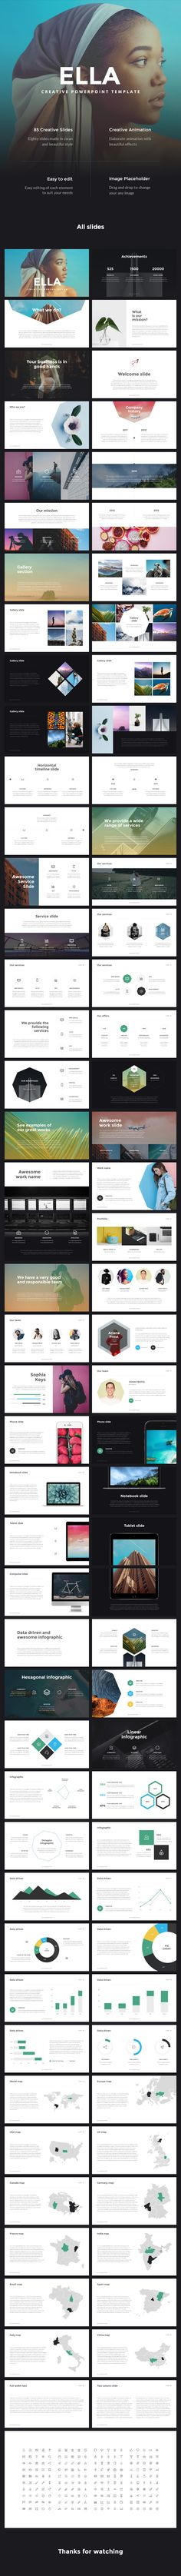 ELLA - Creative PowerPoint Template